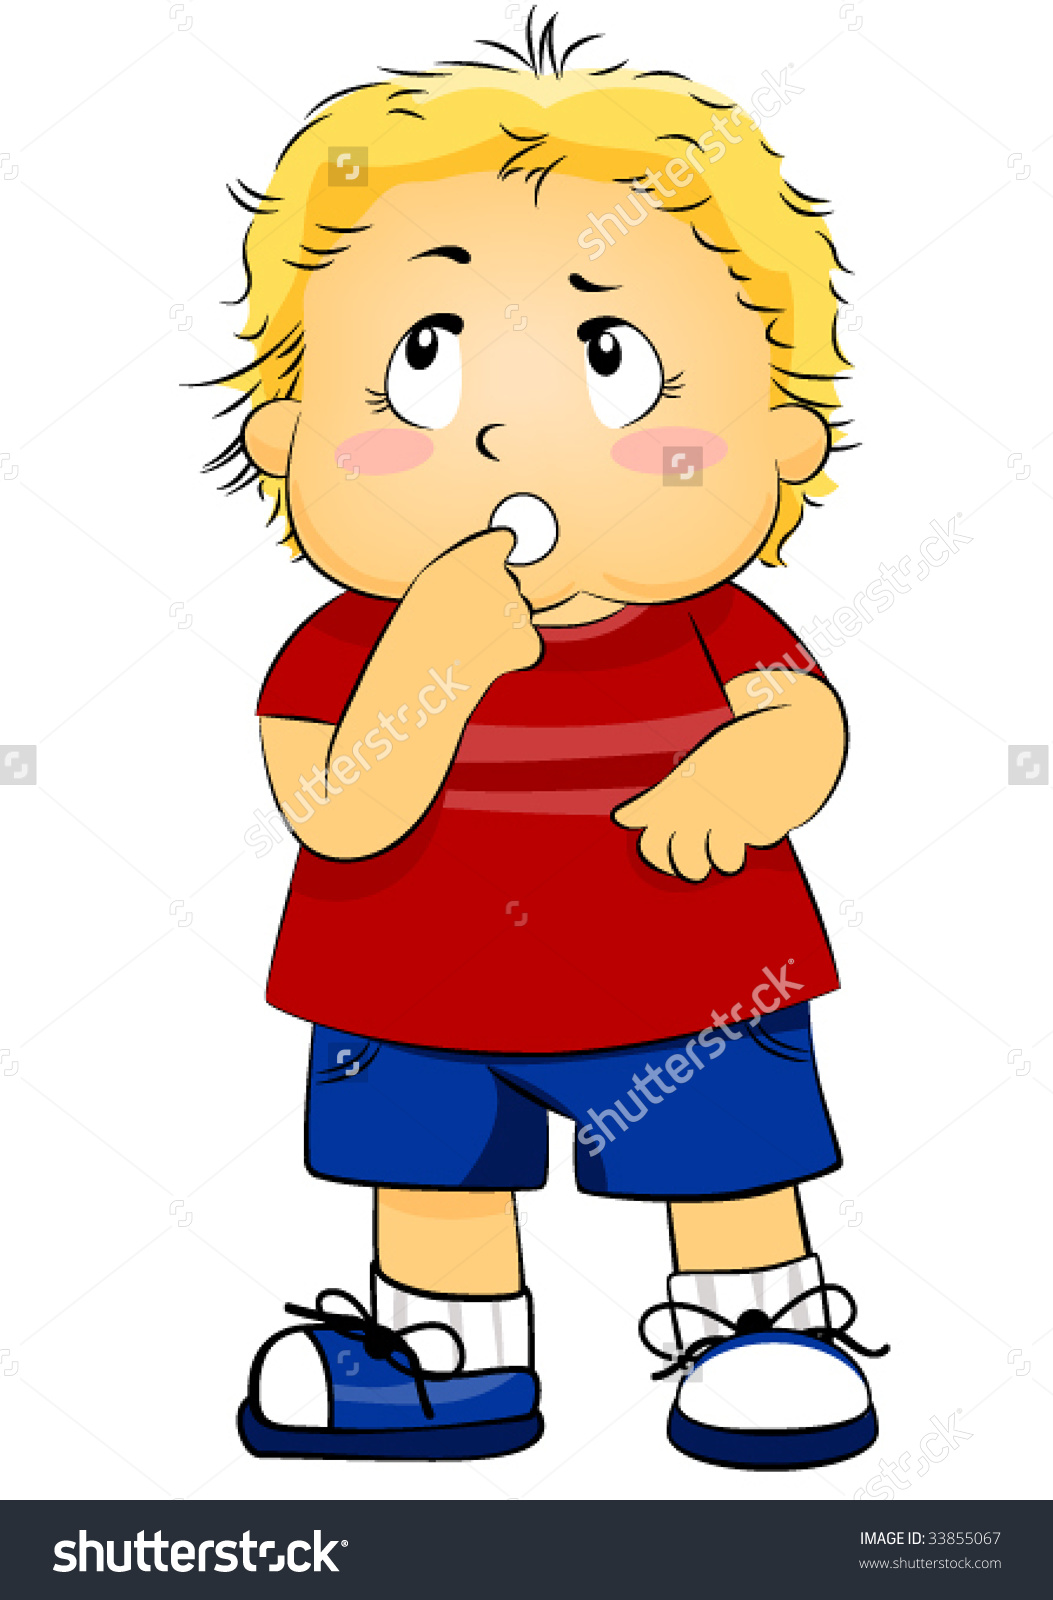 Thinking clipart Collection clipart for kid kids